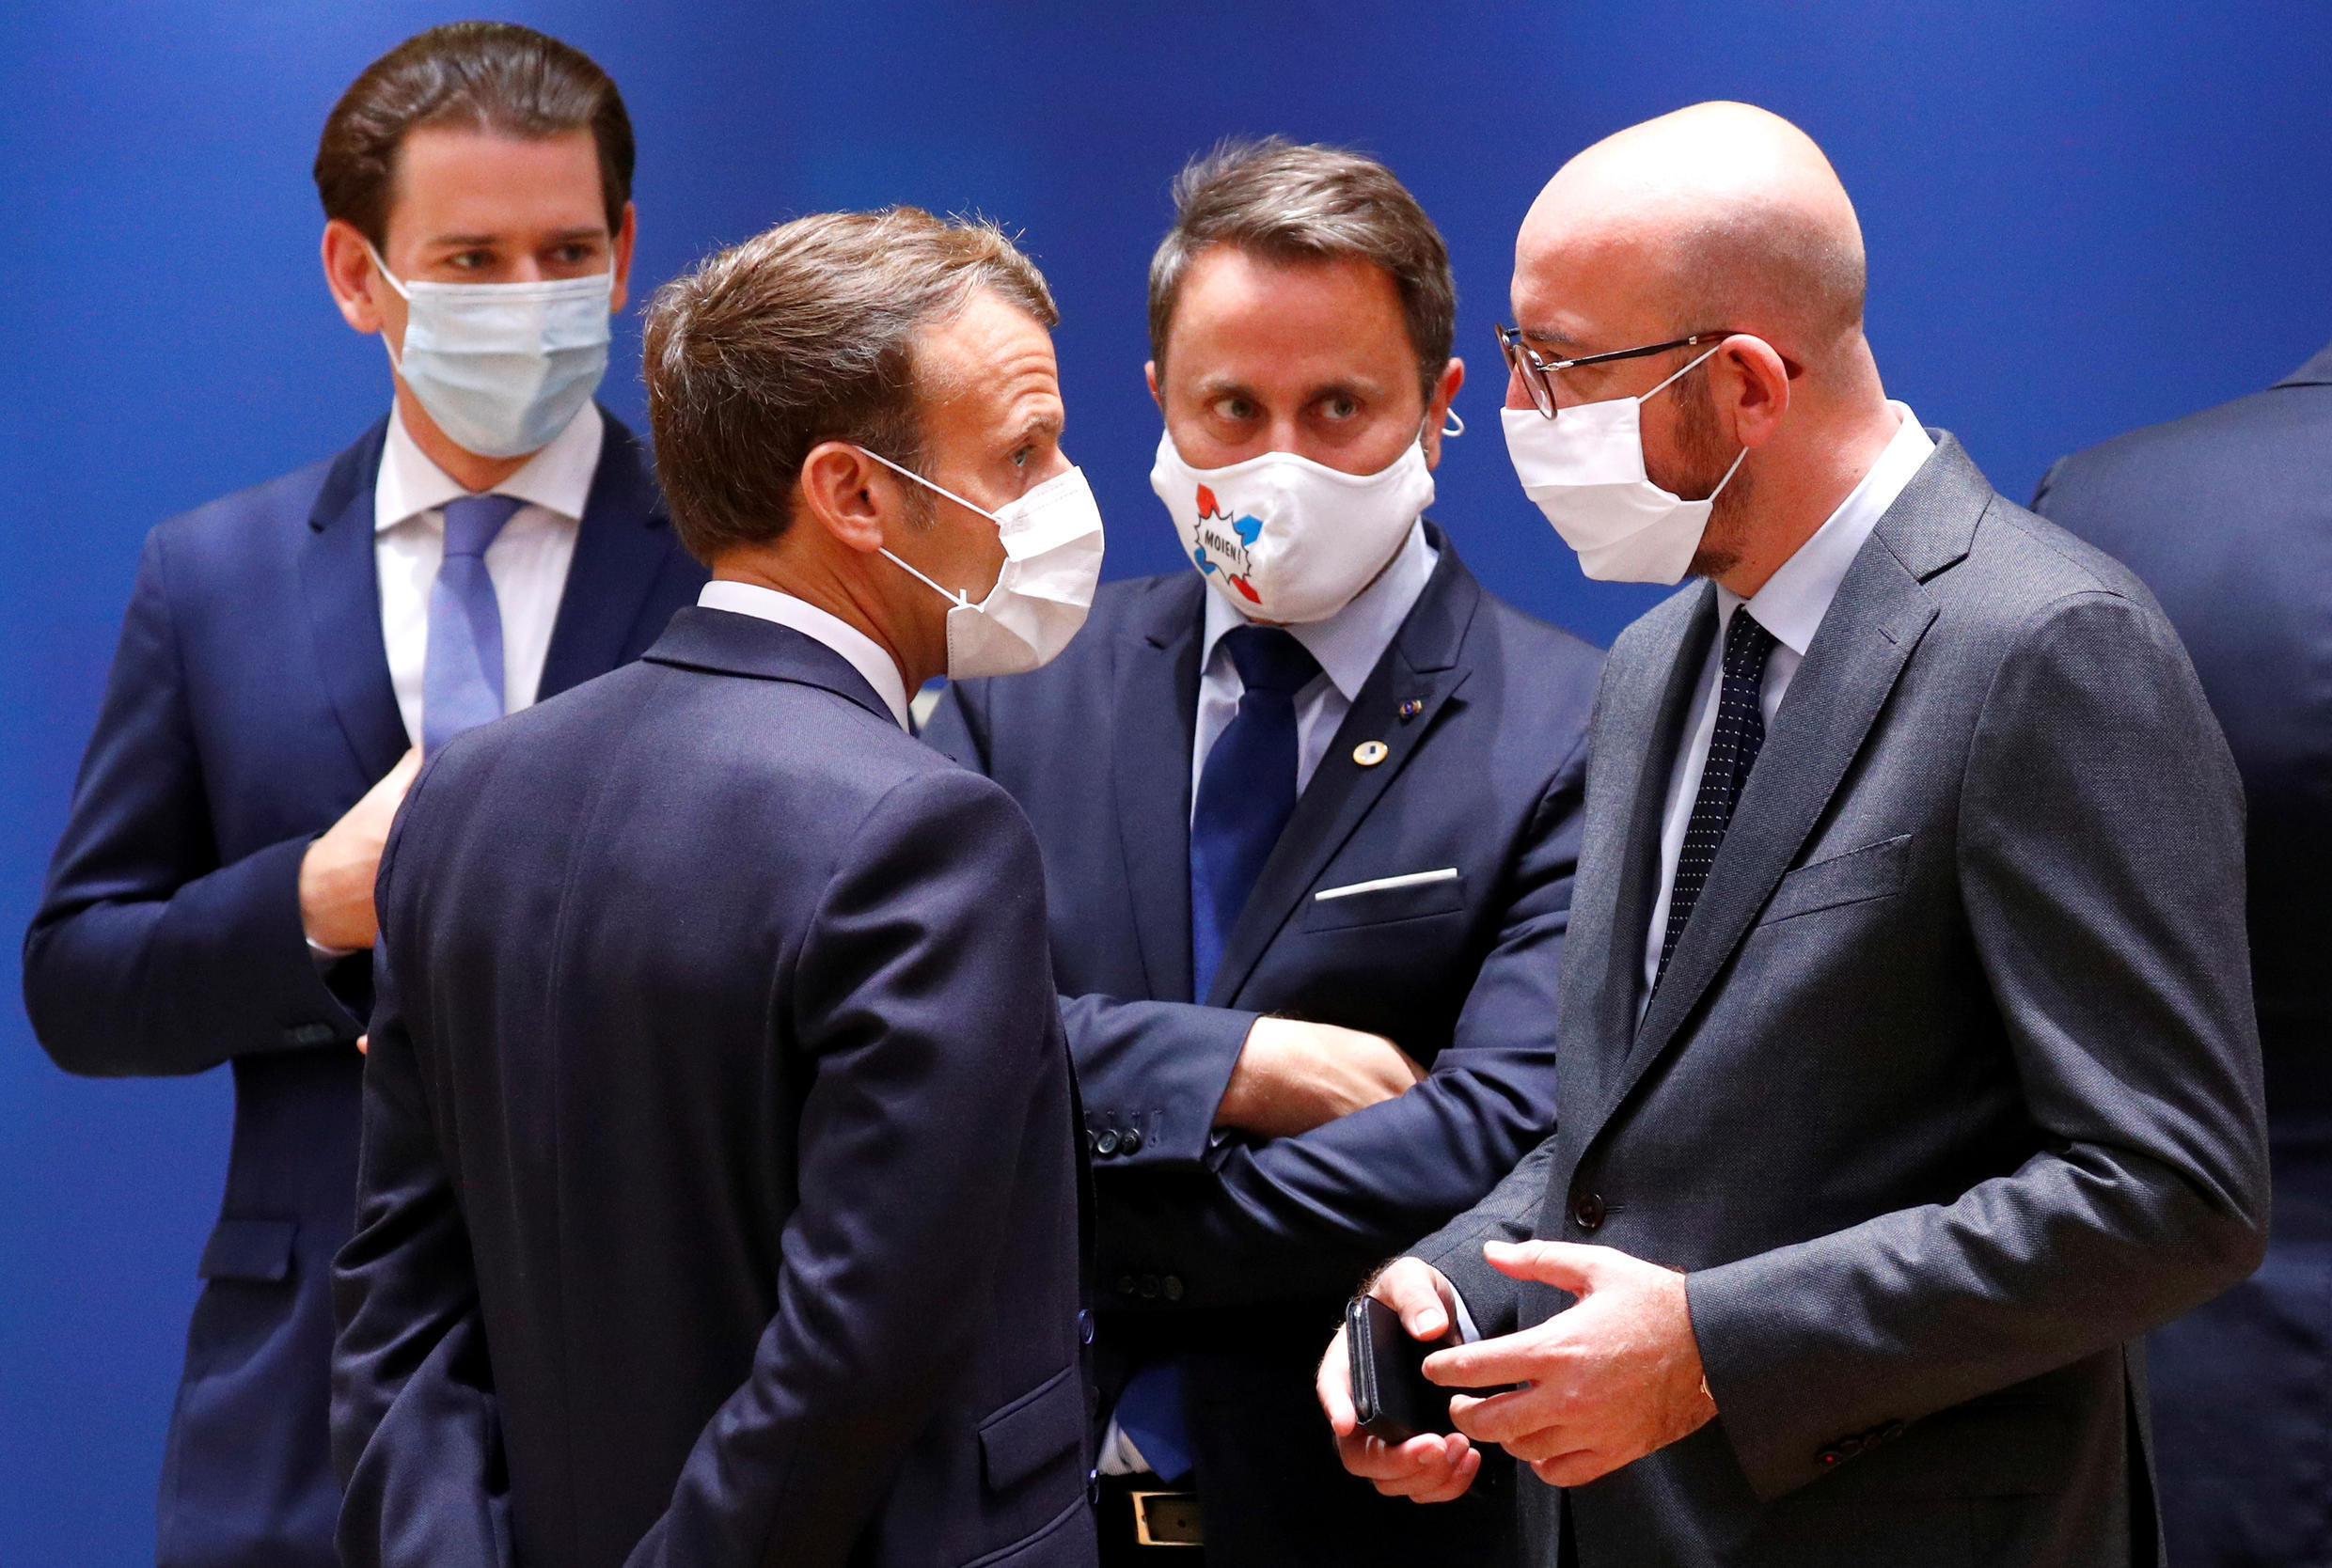 France's President Emmanuel Macron (L), Luxembourg's Prime Minister Xavier Bettel (C) and European Council President Charles Michel (R) speak as Austria's Chancellor Sebastian Kurz looks on during the second day of an EU summit in Brussels, Belgium on July 18, 2020.